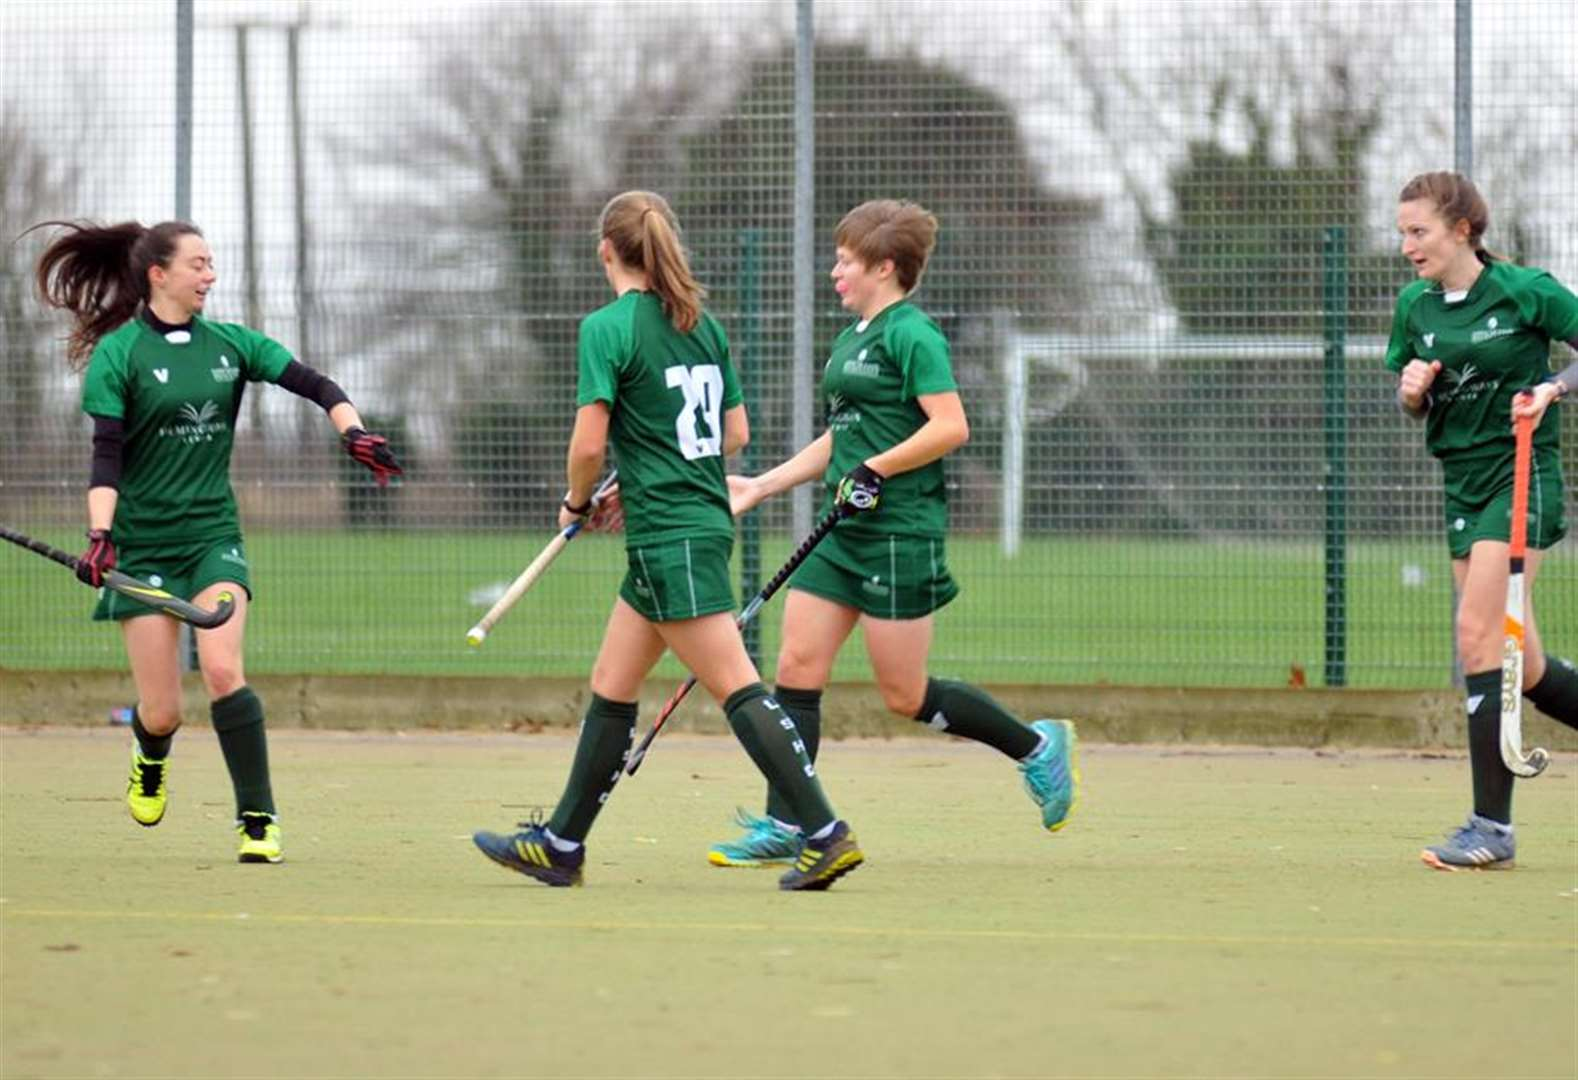 HOCKEY: Bright start but sad finish for Long Sutton in derby